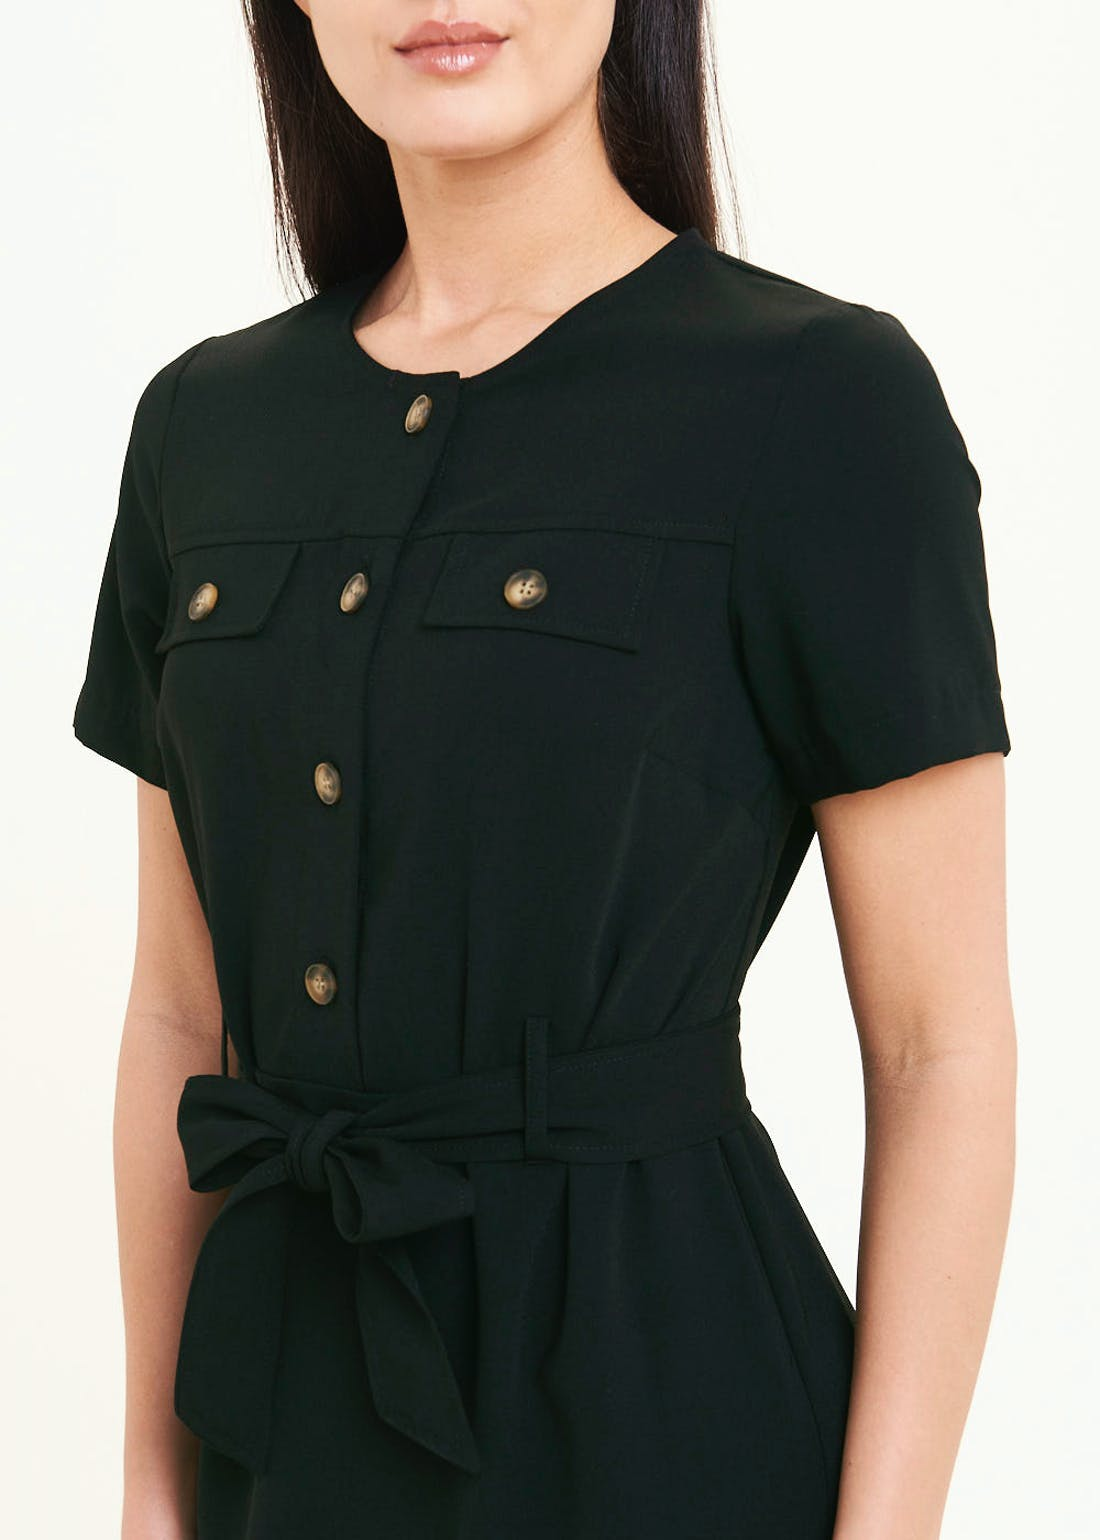 Black Short Sleeve Midi Shirt Dress